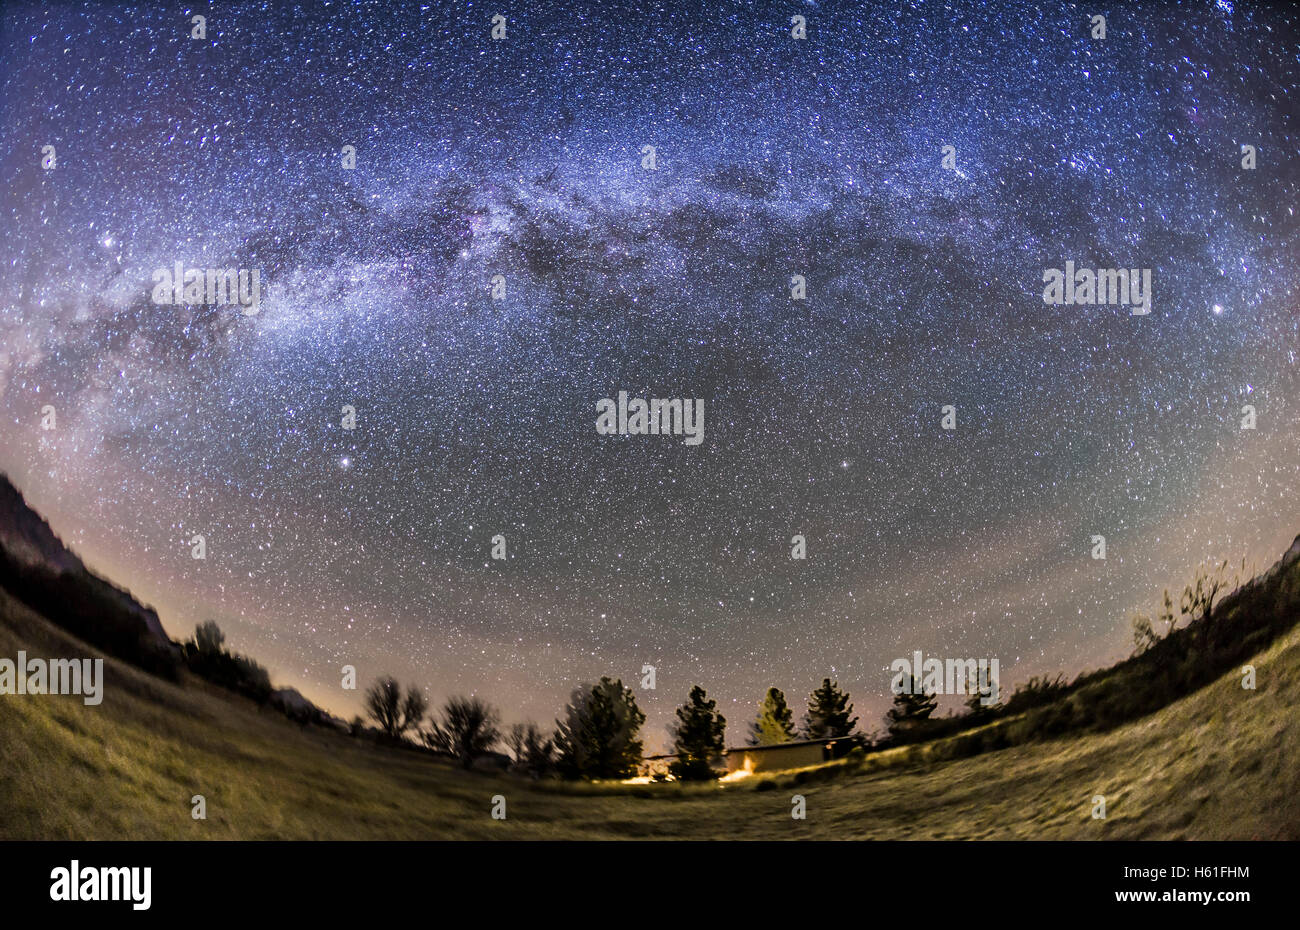 The arch of the Milky Way in the northern autumn and early winter sky, from Arizona on December 5, 2015. The Milky - Stock Image